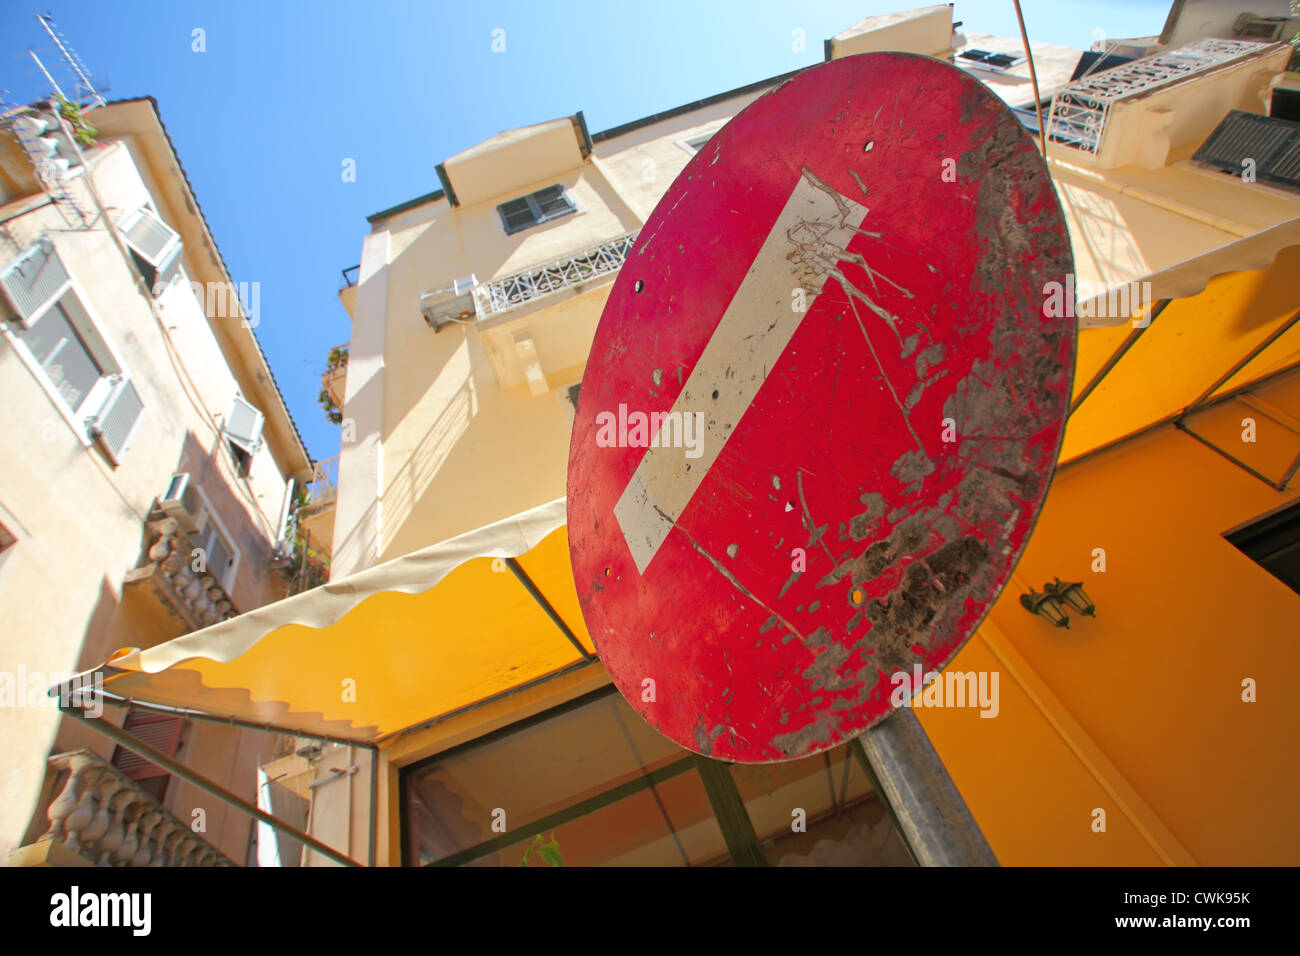 No Entry (Do Not Enter) road sign. Low angle view. Kerkyra town, Corfu Island, Greece. - Stock Image